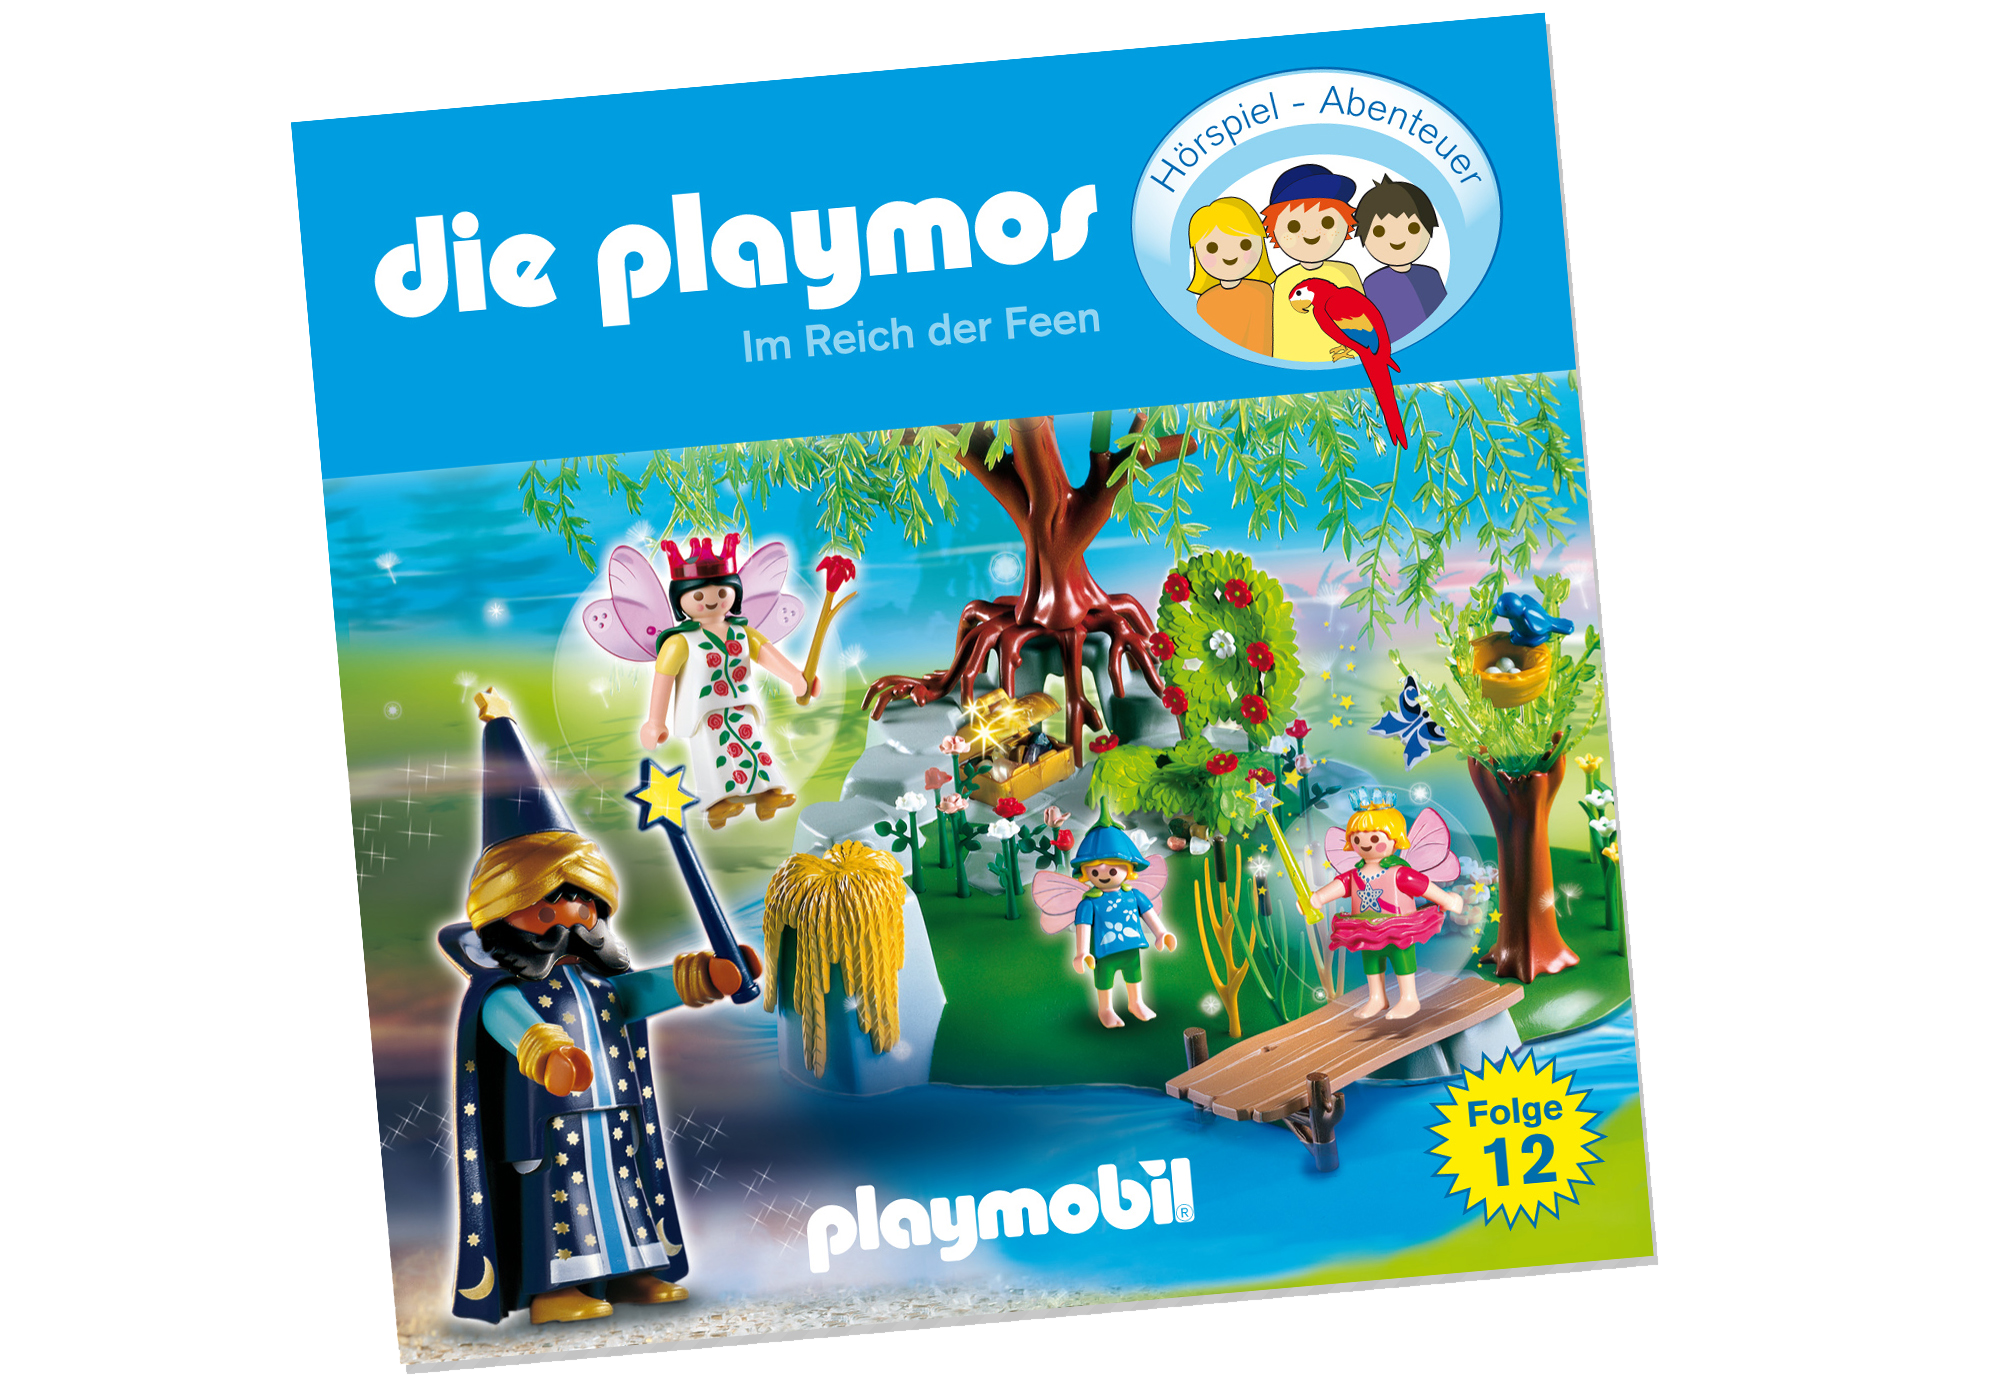 http://media.playmobil.com/i/playmobil/80200_product_detail